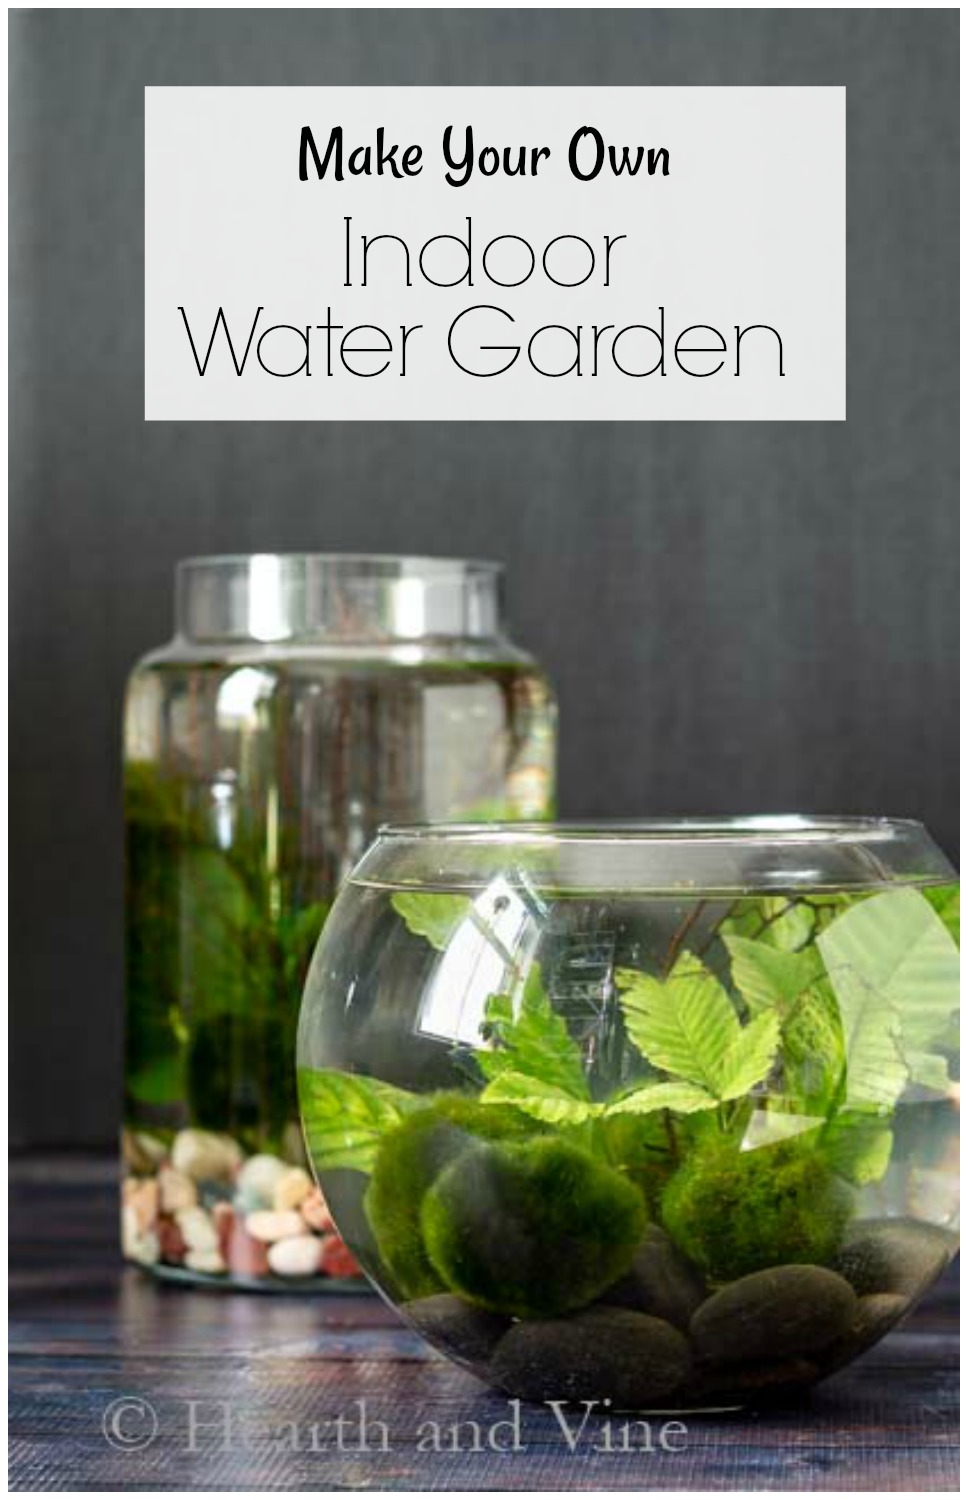 two desktop water gardens